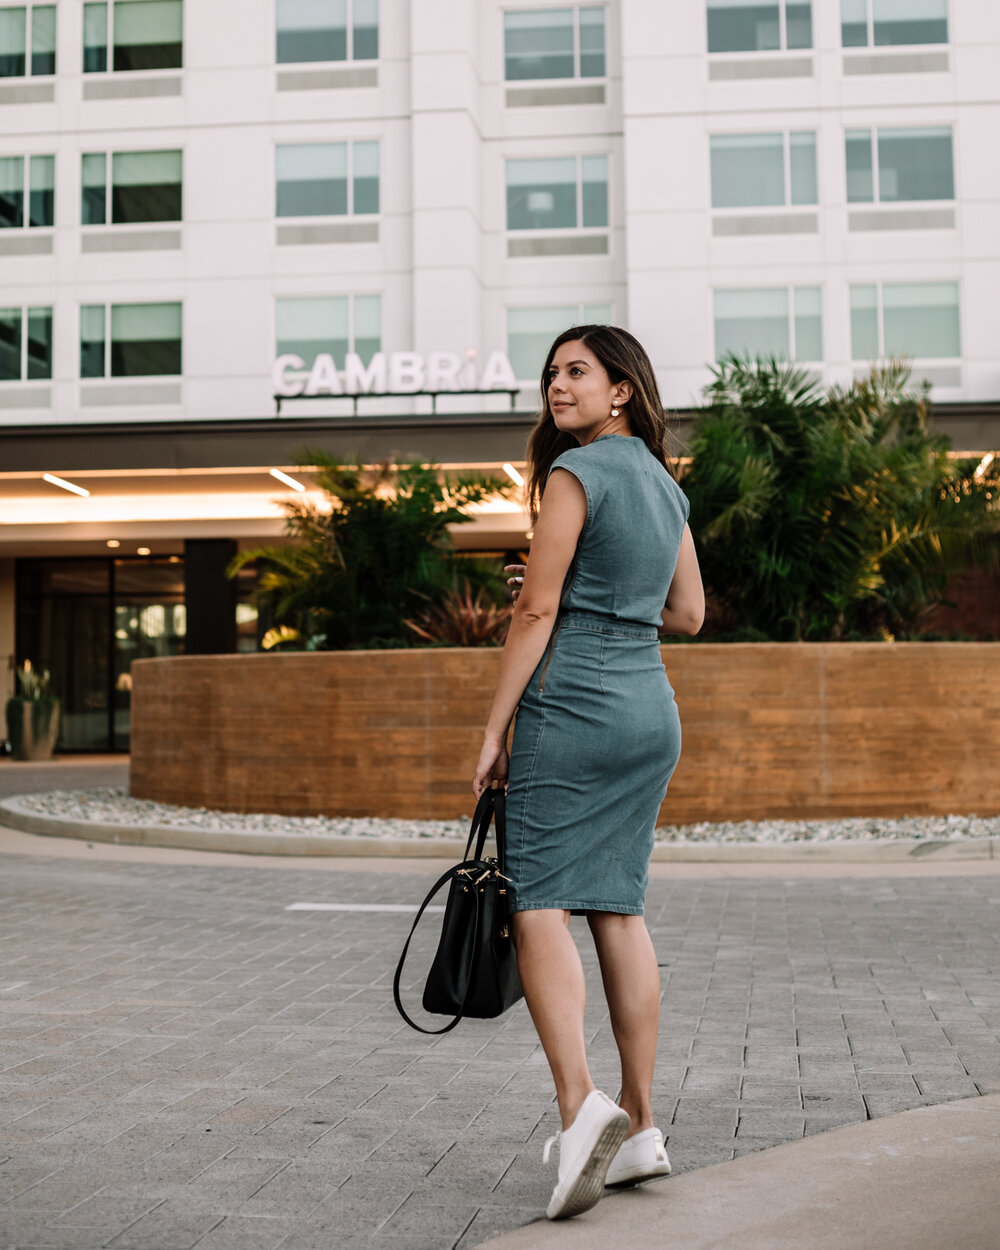 Rachel Off Duty: Woman in Blue Dress at Cambria Hotel in Anaheim